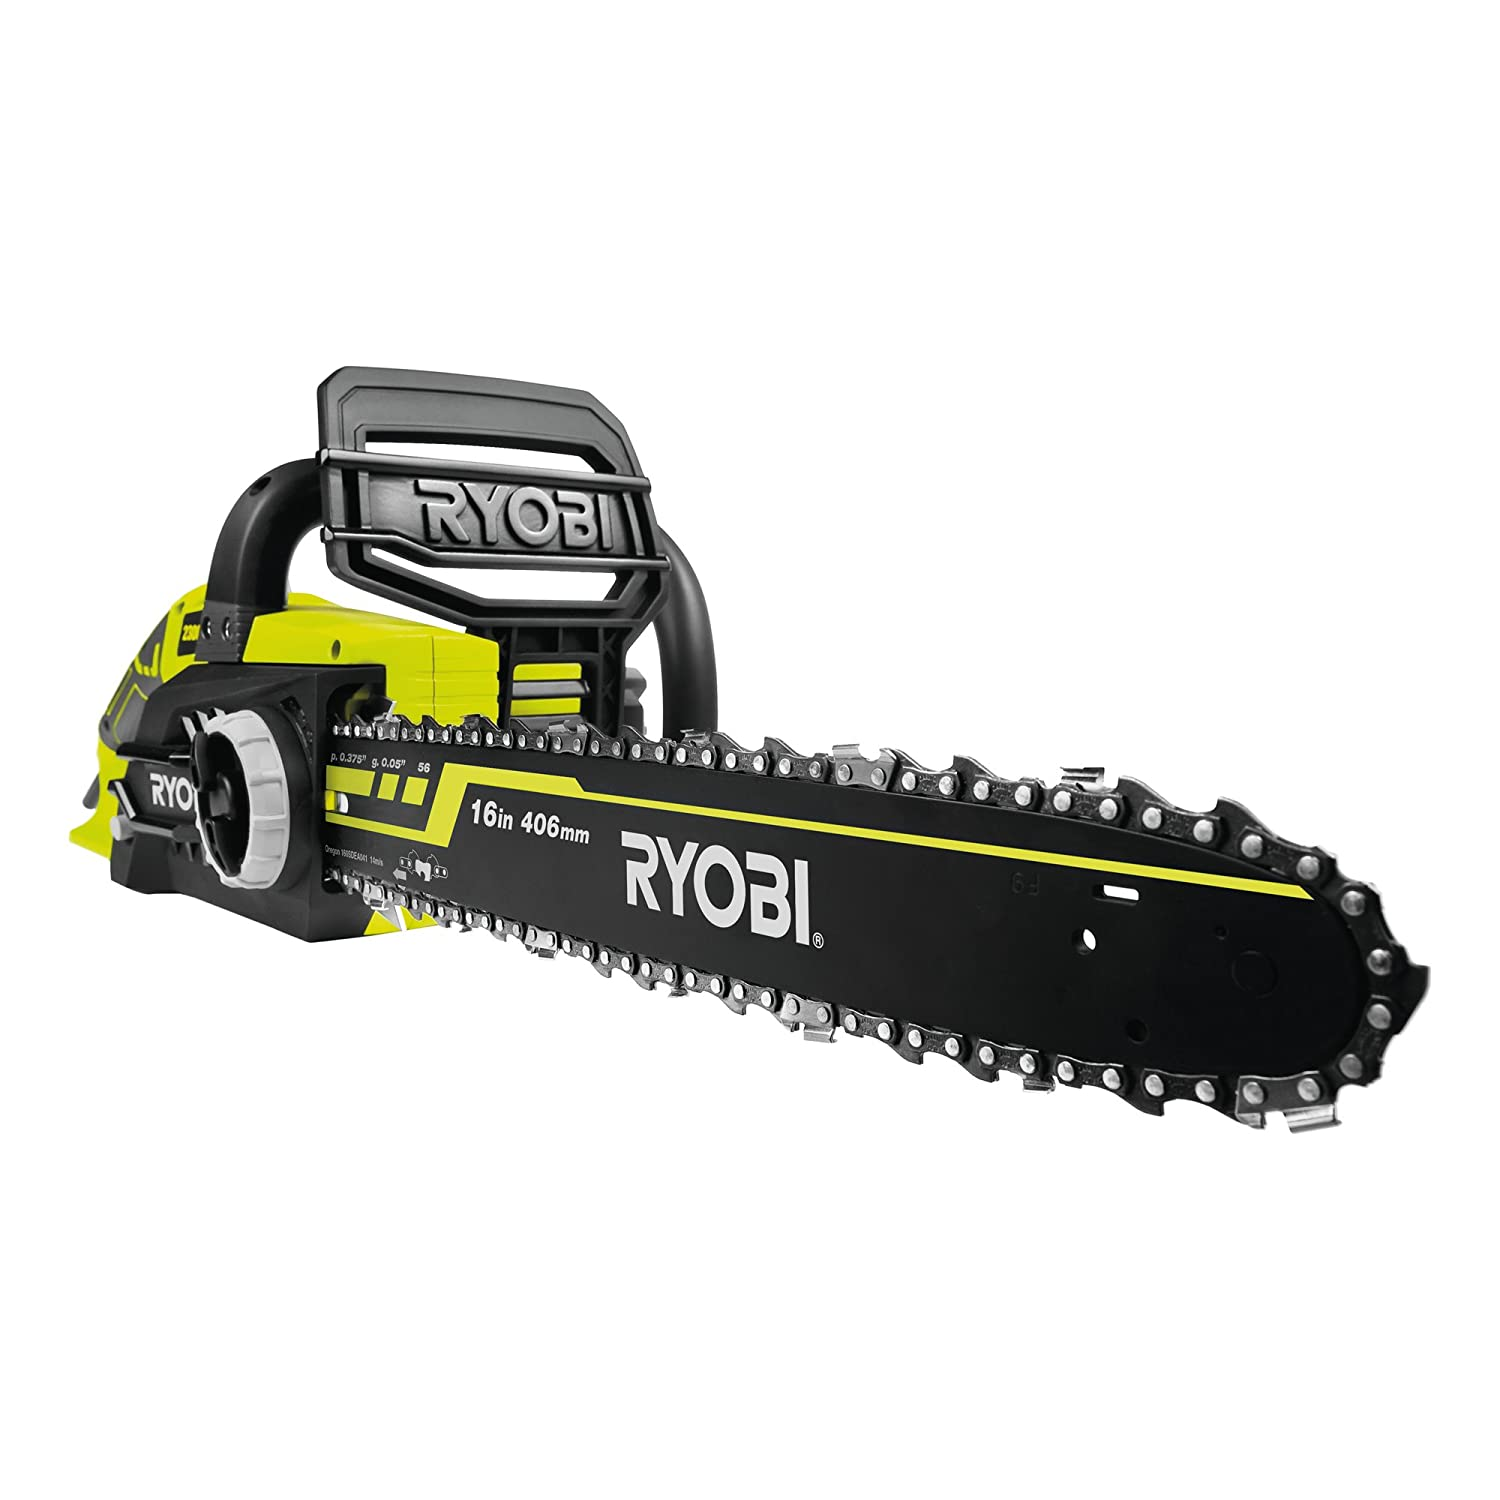 Ryobi rcs2340 chainsaw 2300 w greenblack amazon diy tools keyboard keysfo Gallery